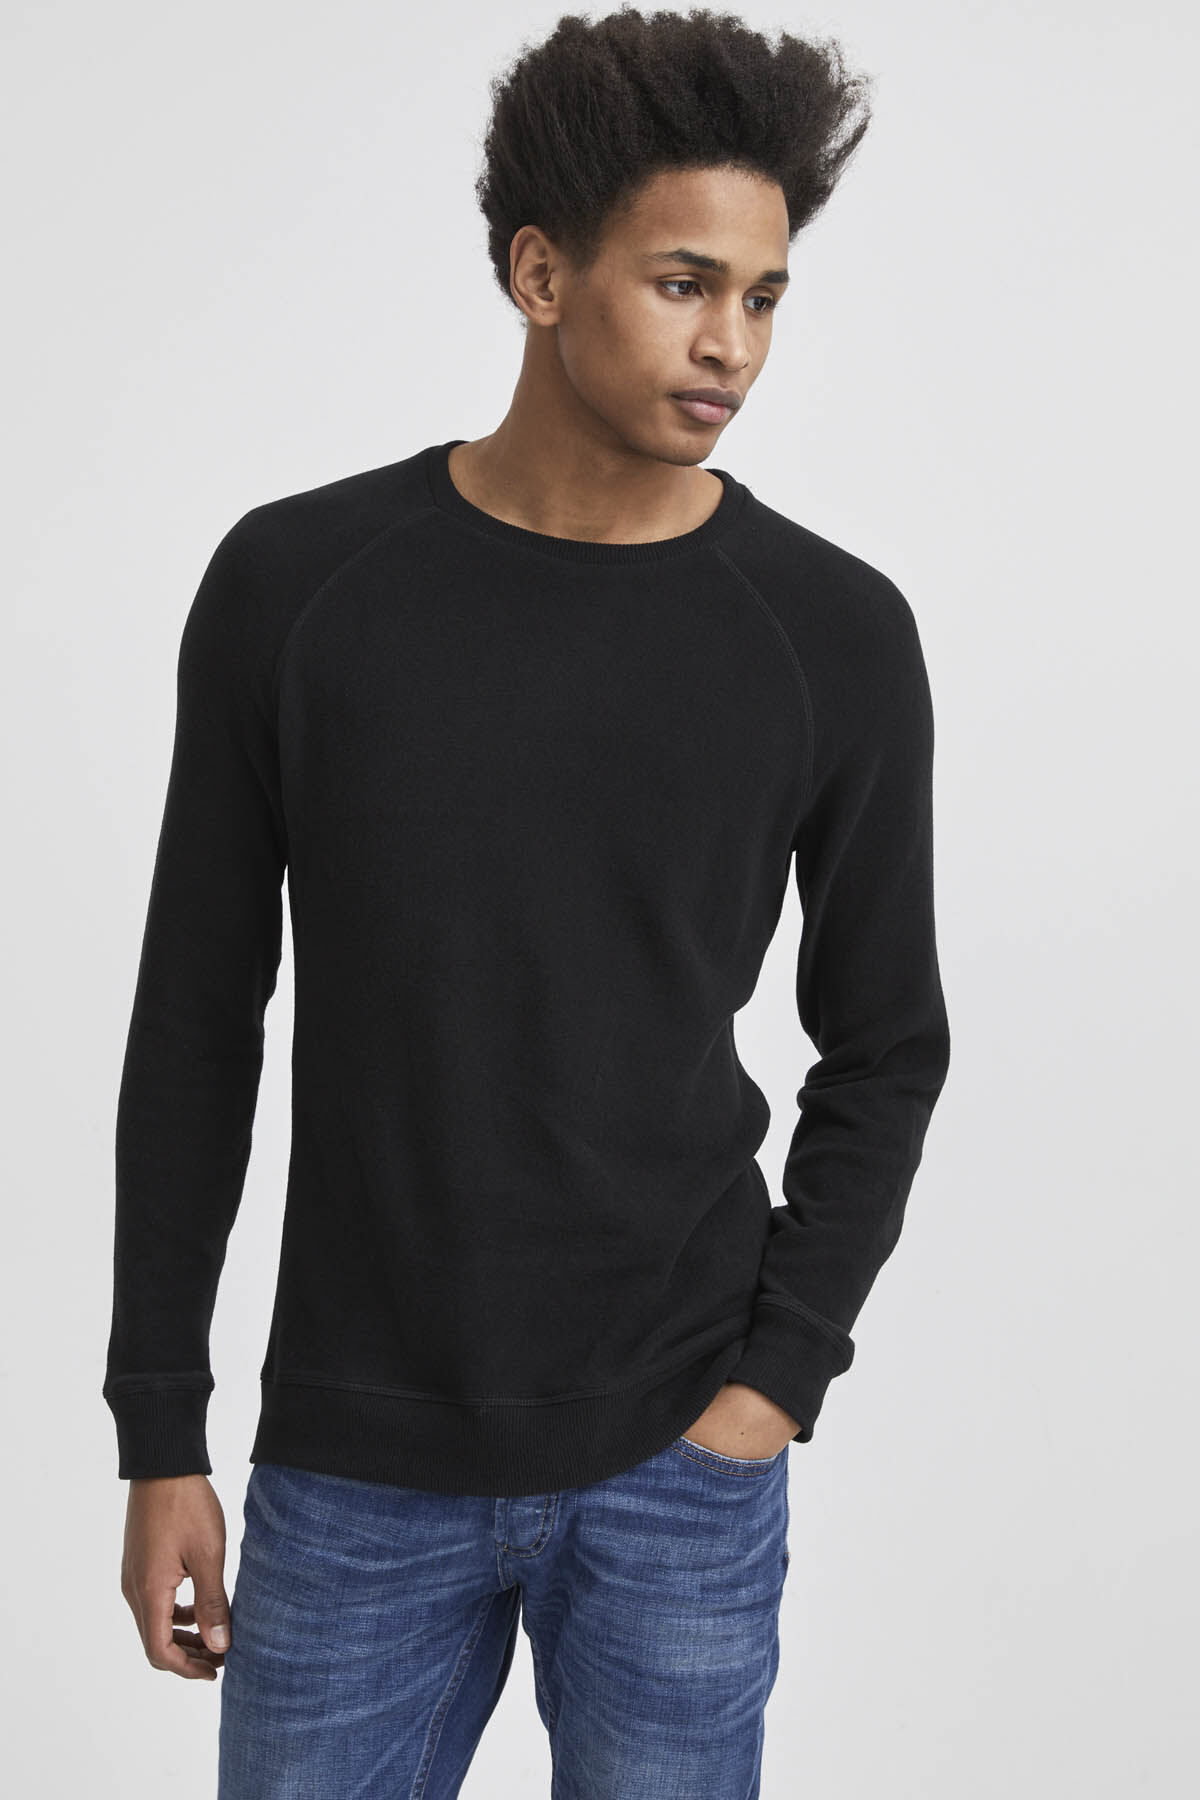 JV RAGLAN CREW Cotton Fleece Jersey - Regular Fit